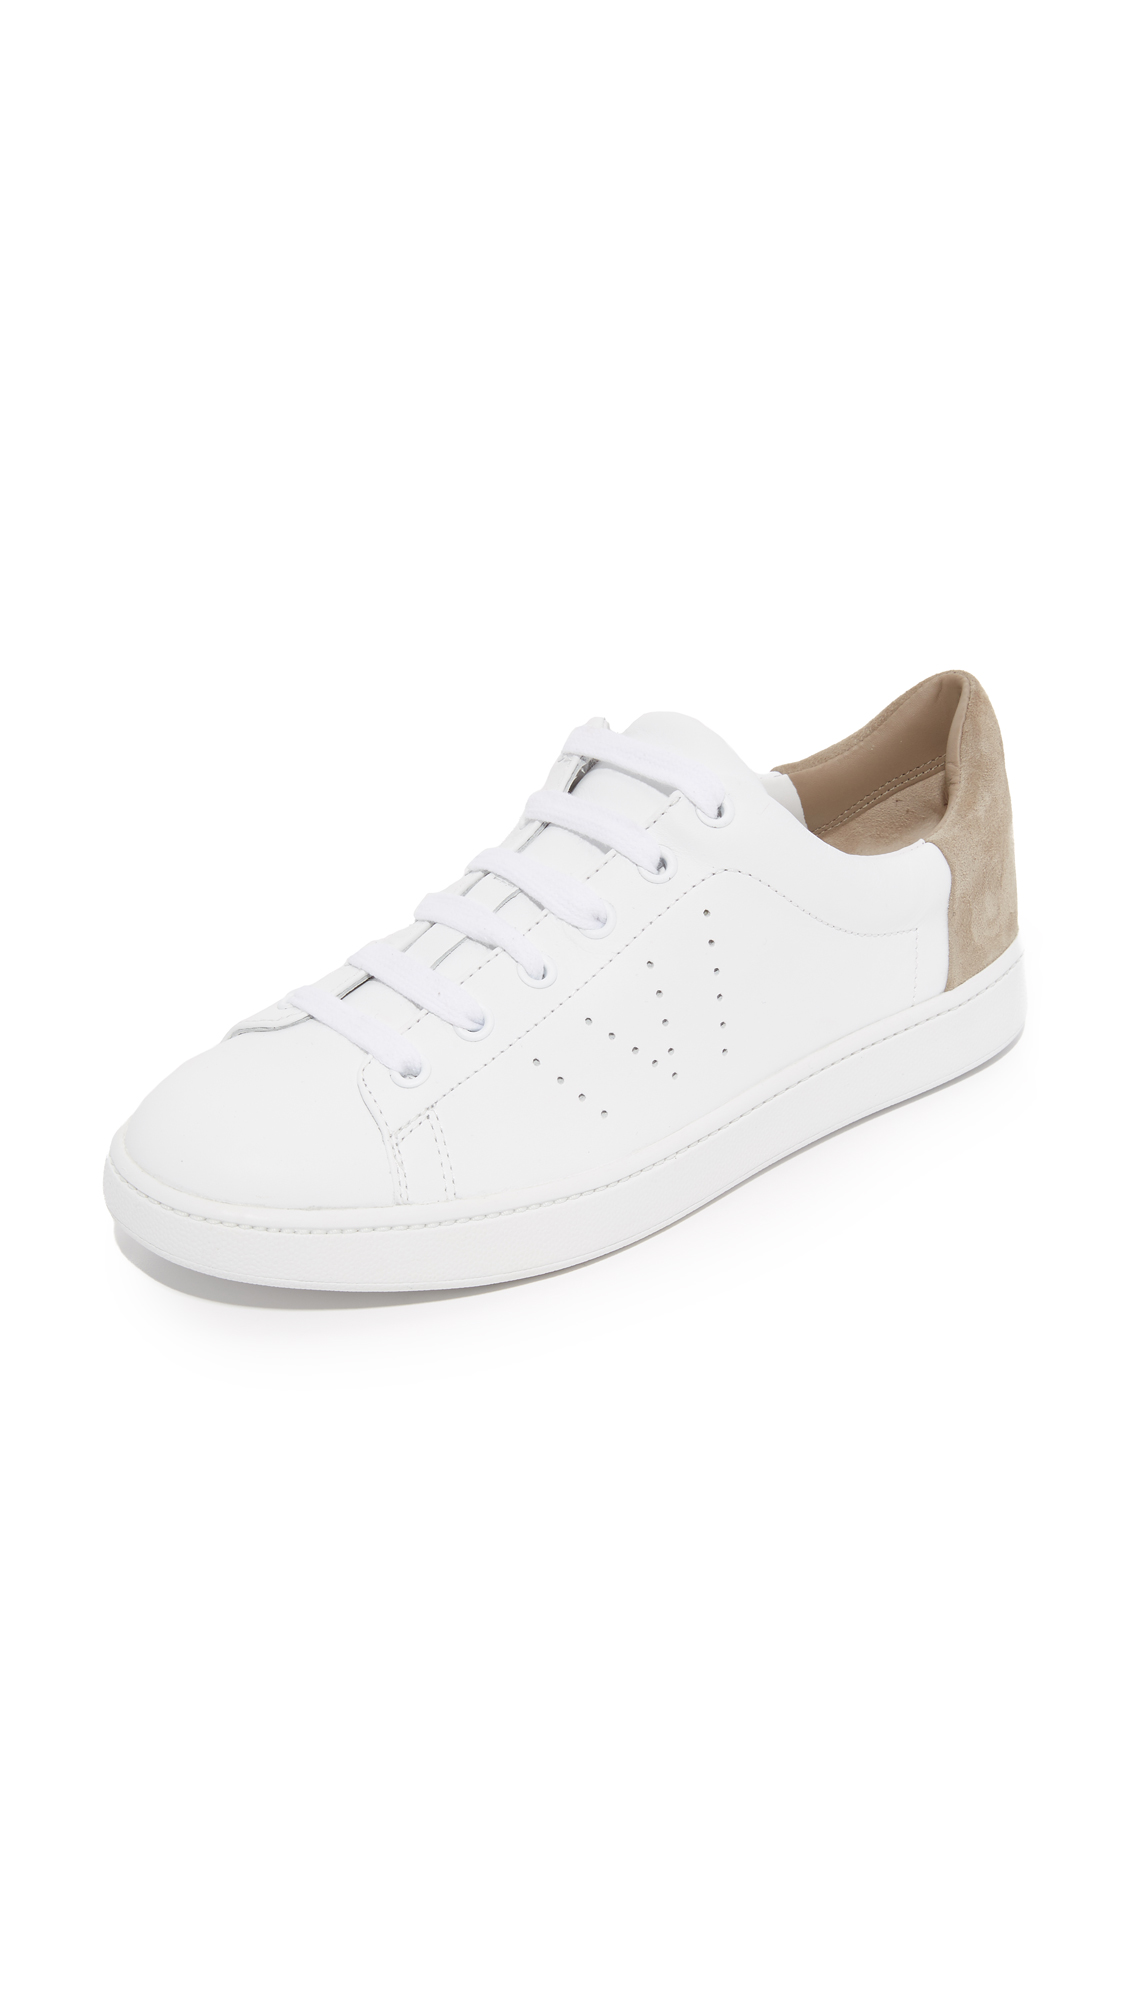 Photo of Vince Varin Sneakers Optic White-Woodsmoke - Vince online